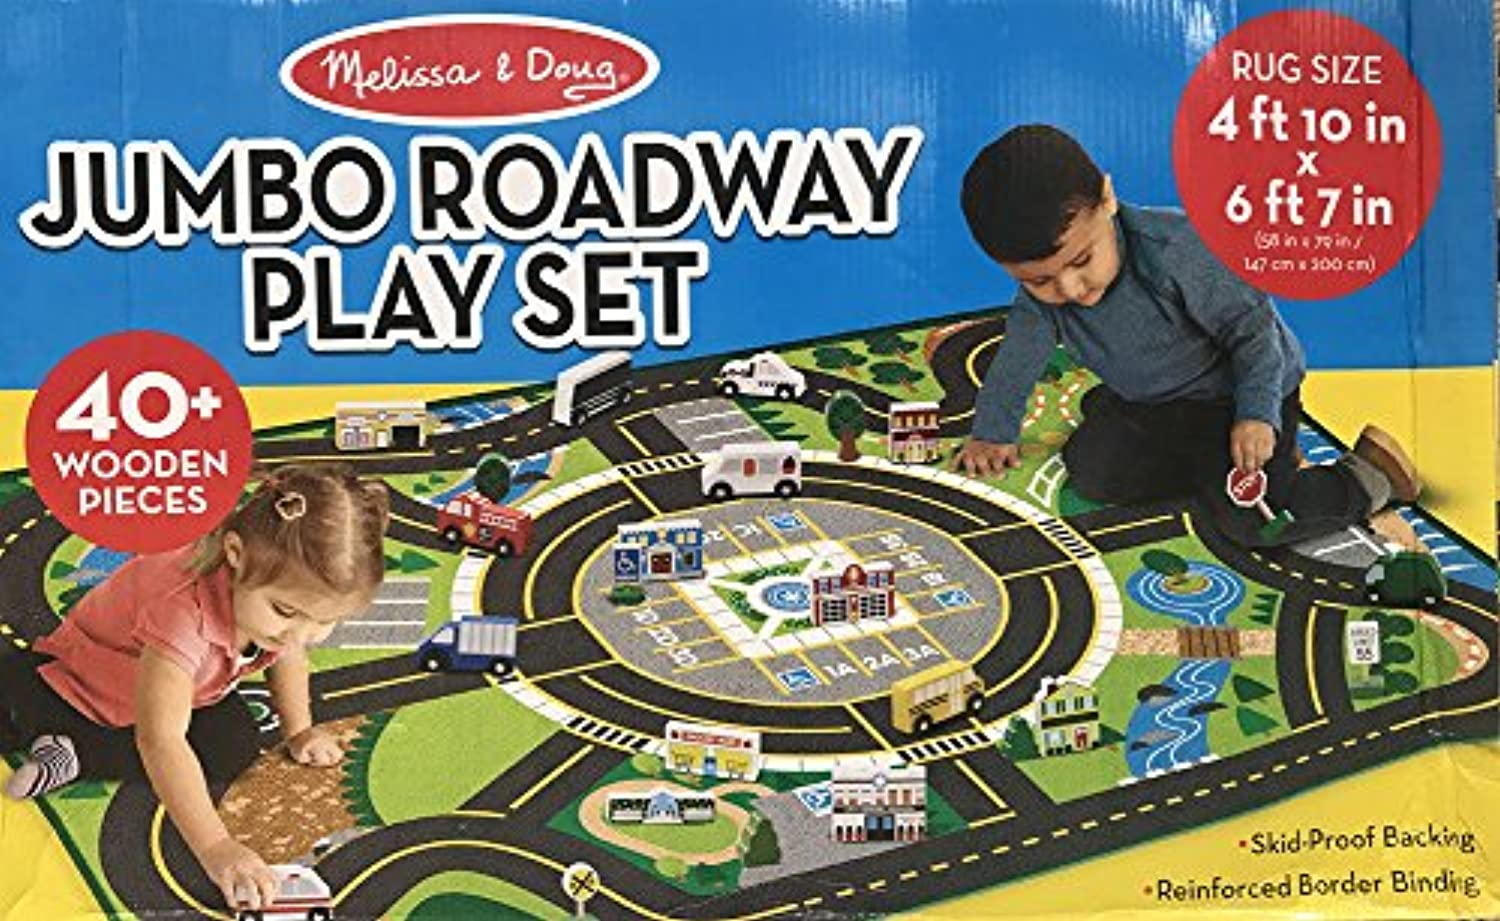 New Kids Jumbo Roadway 58  x 79  Activity Rug Play Set with 40+ Wooden Pieces